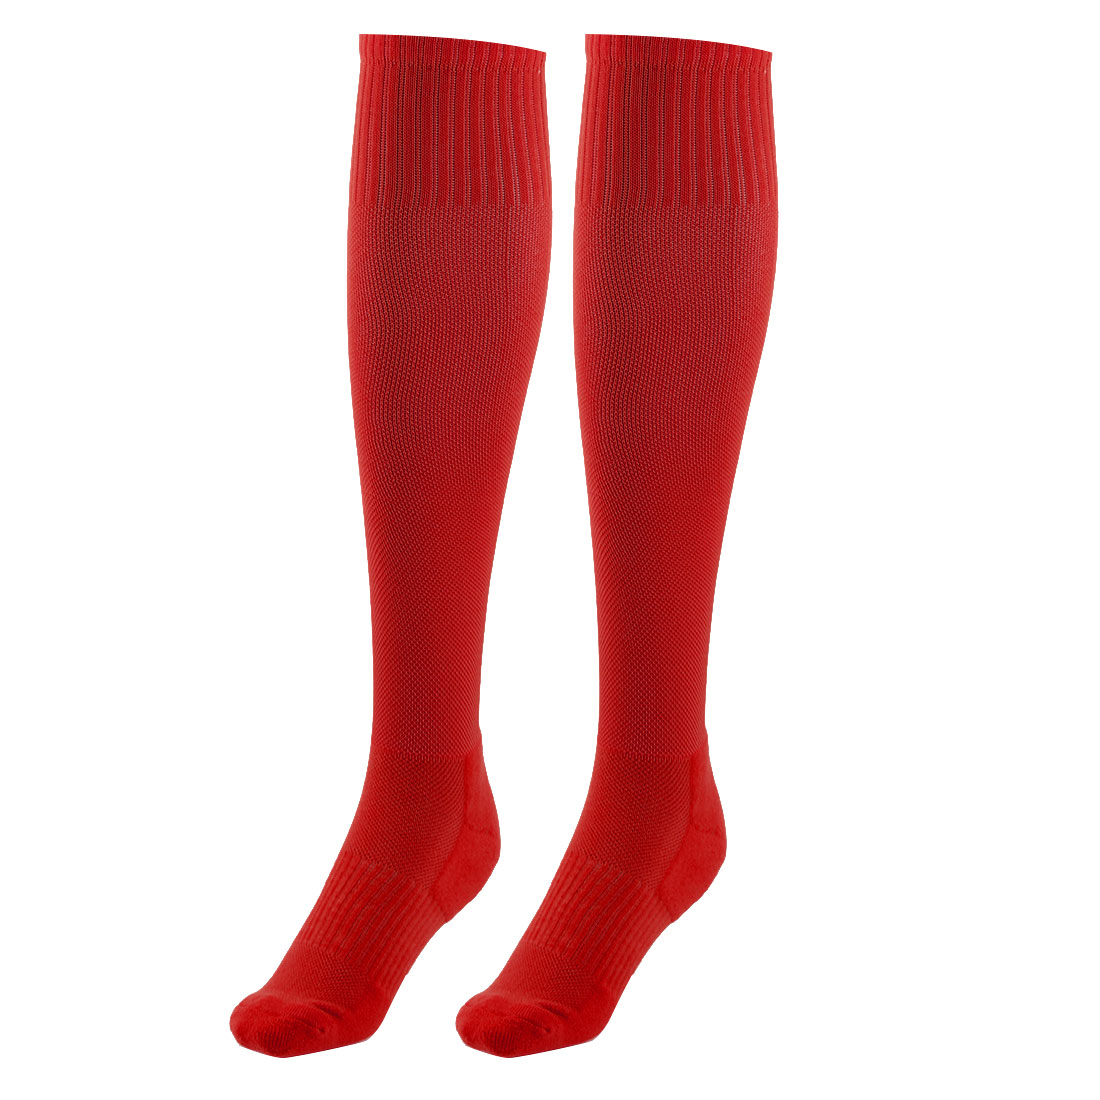 Adult Cotton Blends Knee High Style Hockey Rugby Soccer Football Sports Long Socks Red Pair